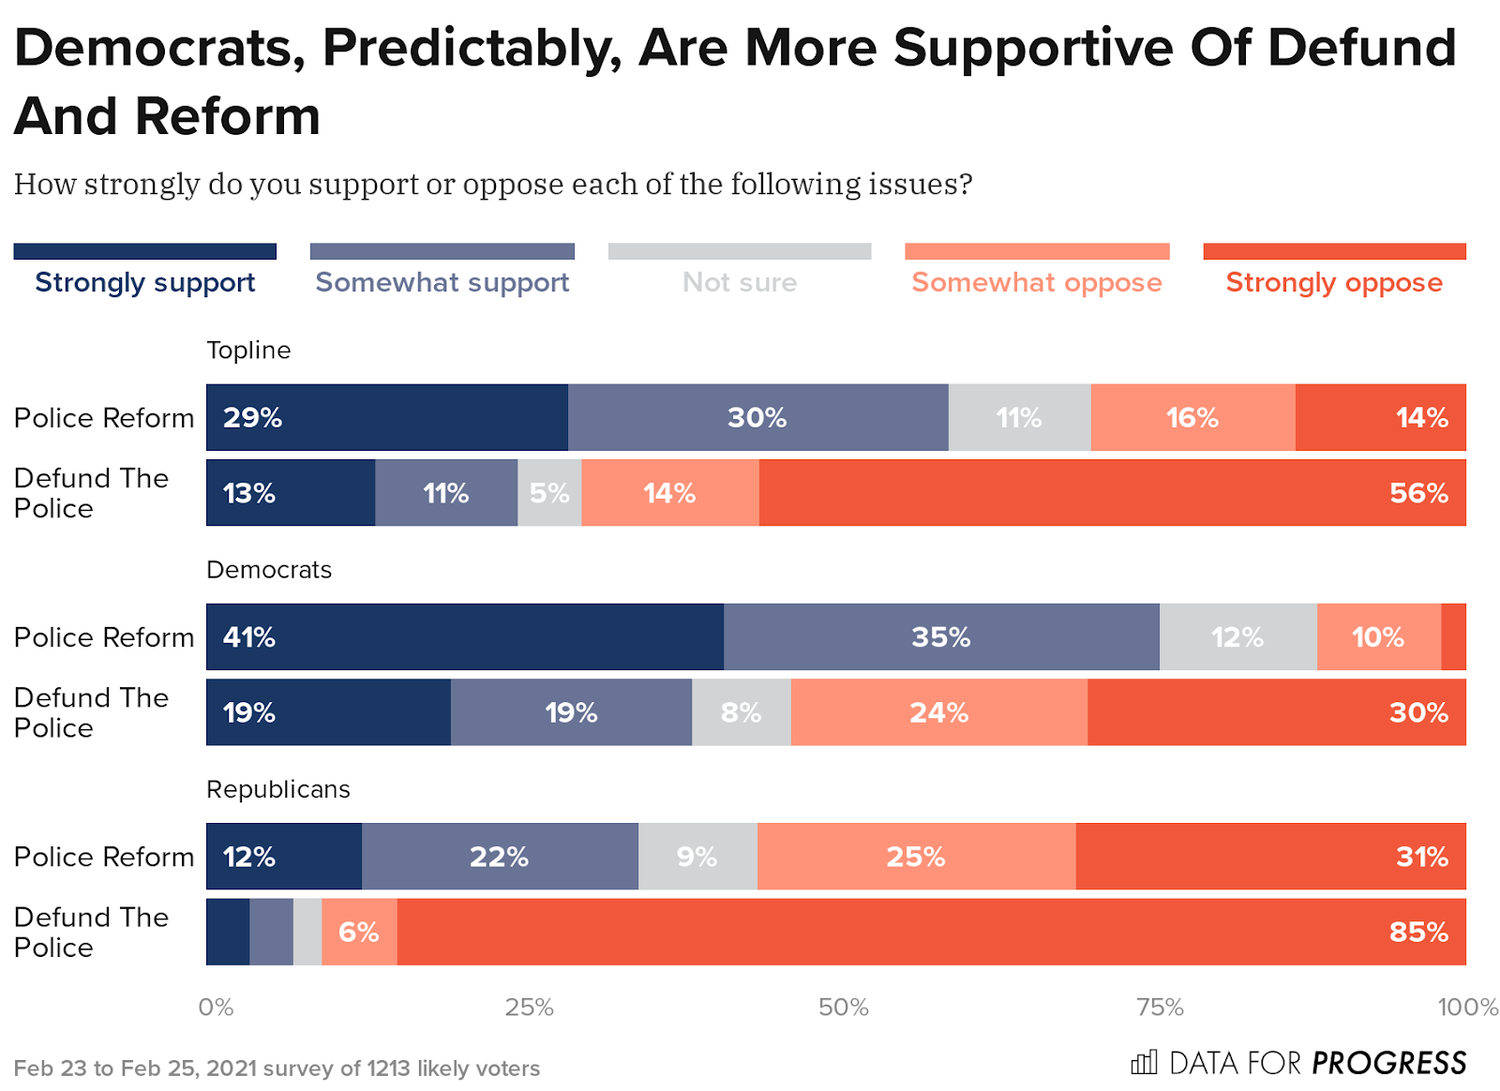 dfp_21_2_g_ours_0010310_topline_Democrats_Predictably_Are_617d.png